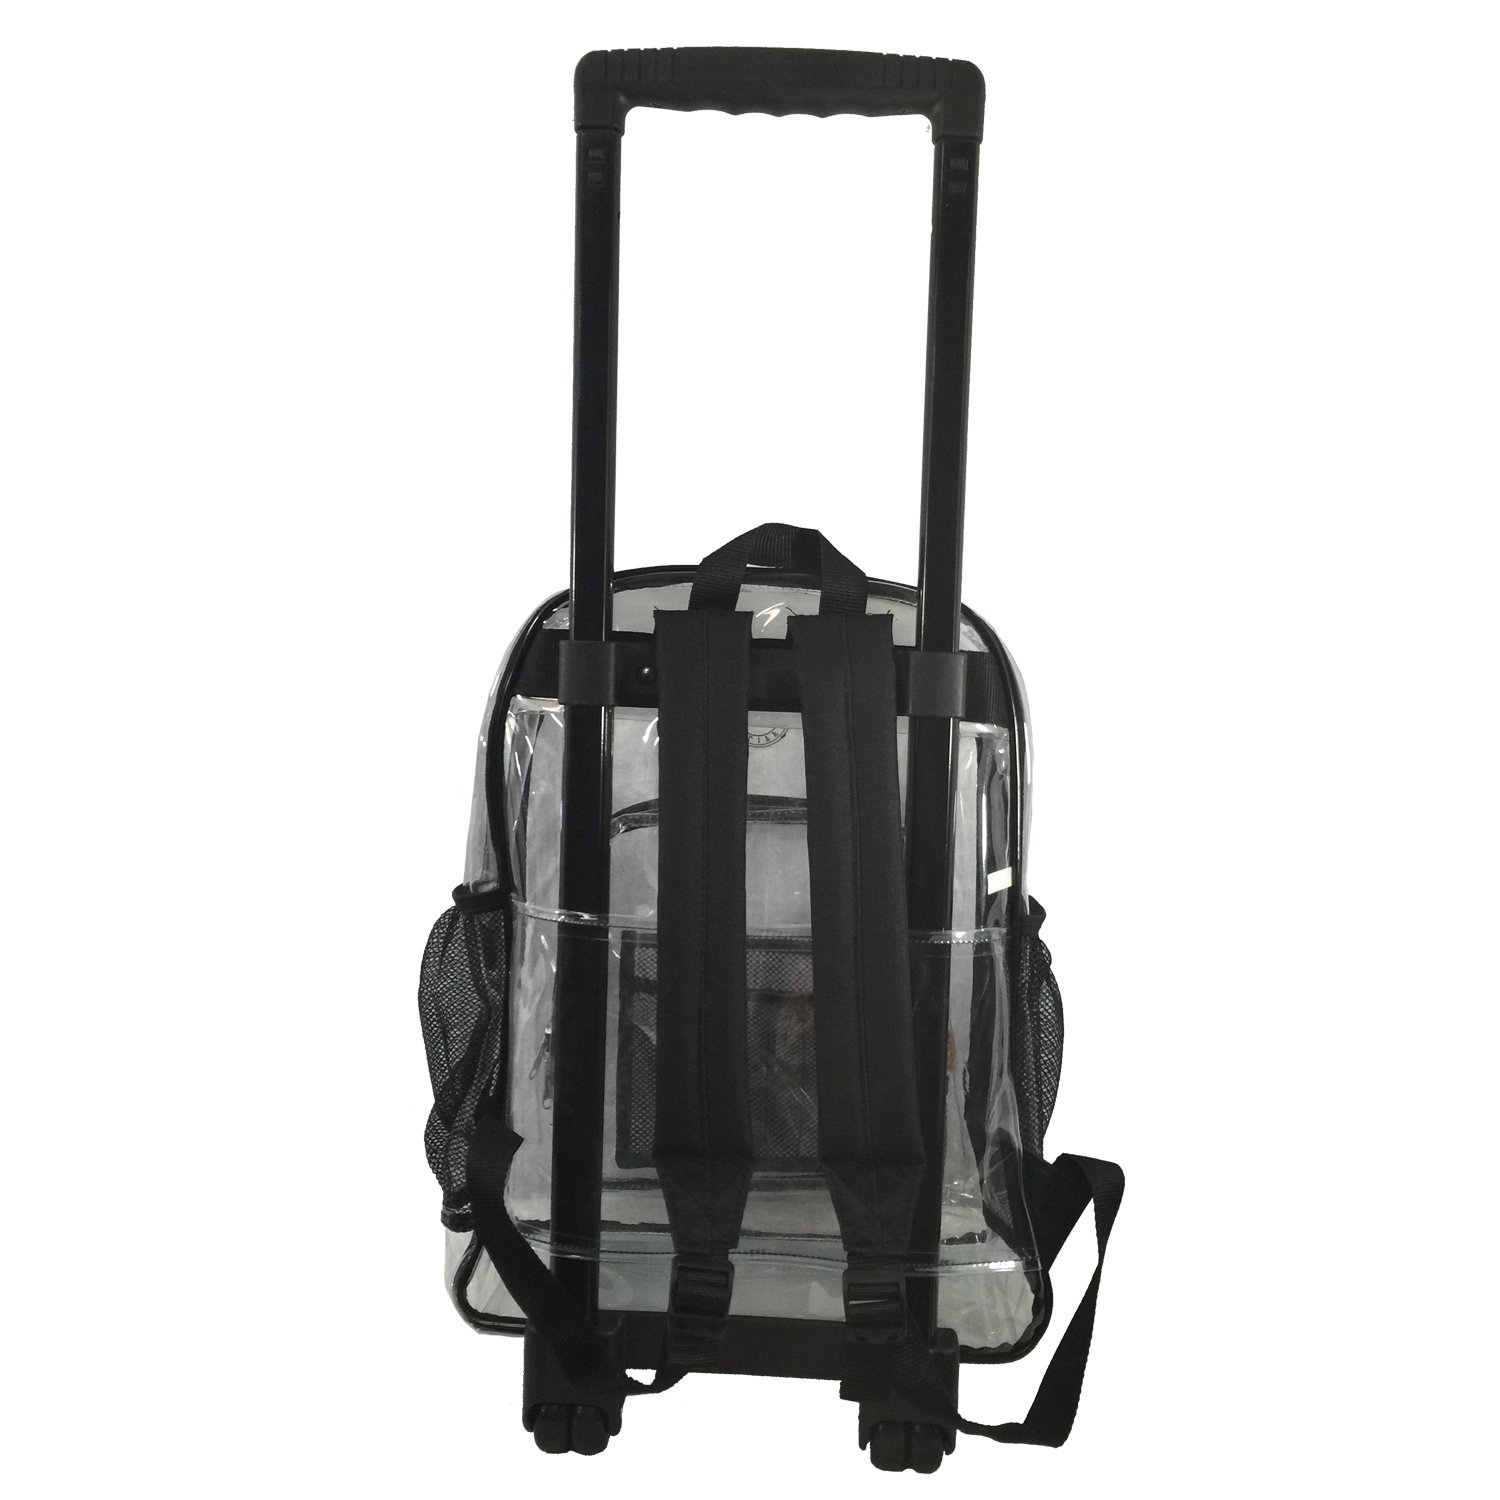 Rolling Clear Backpack Heavy Duty Bookbag Quality See Through Workbag Travel Daypack Transparent School Book Bags with Wheels Black by K-Cliffs (Image #4)